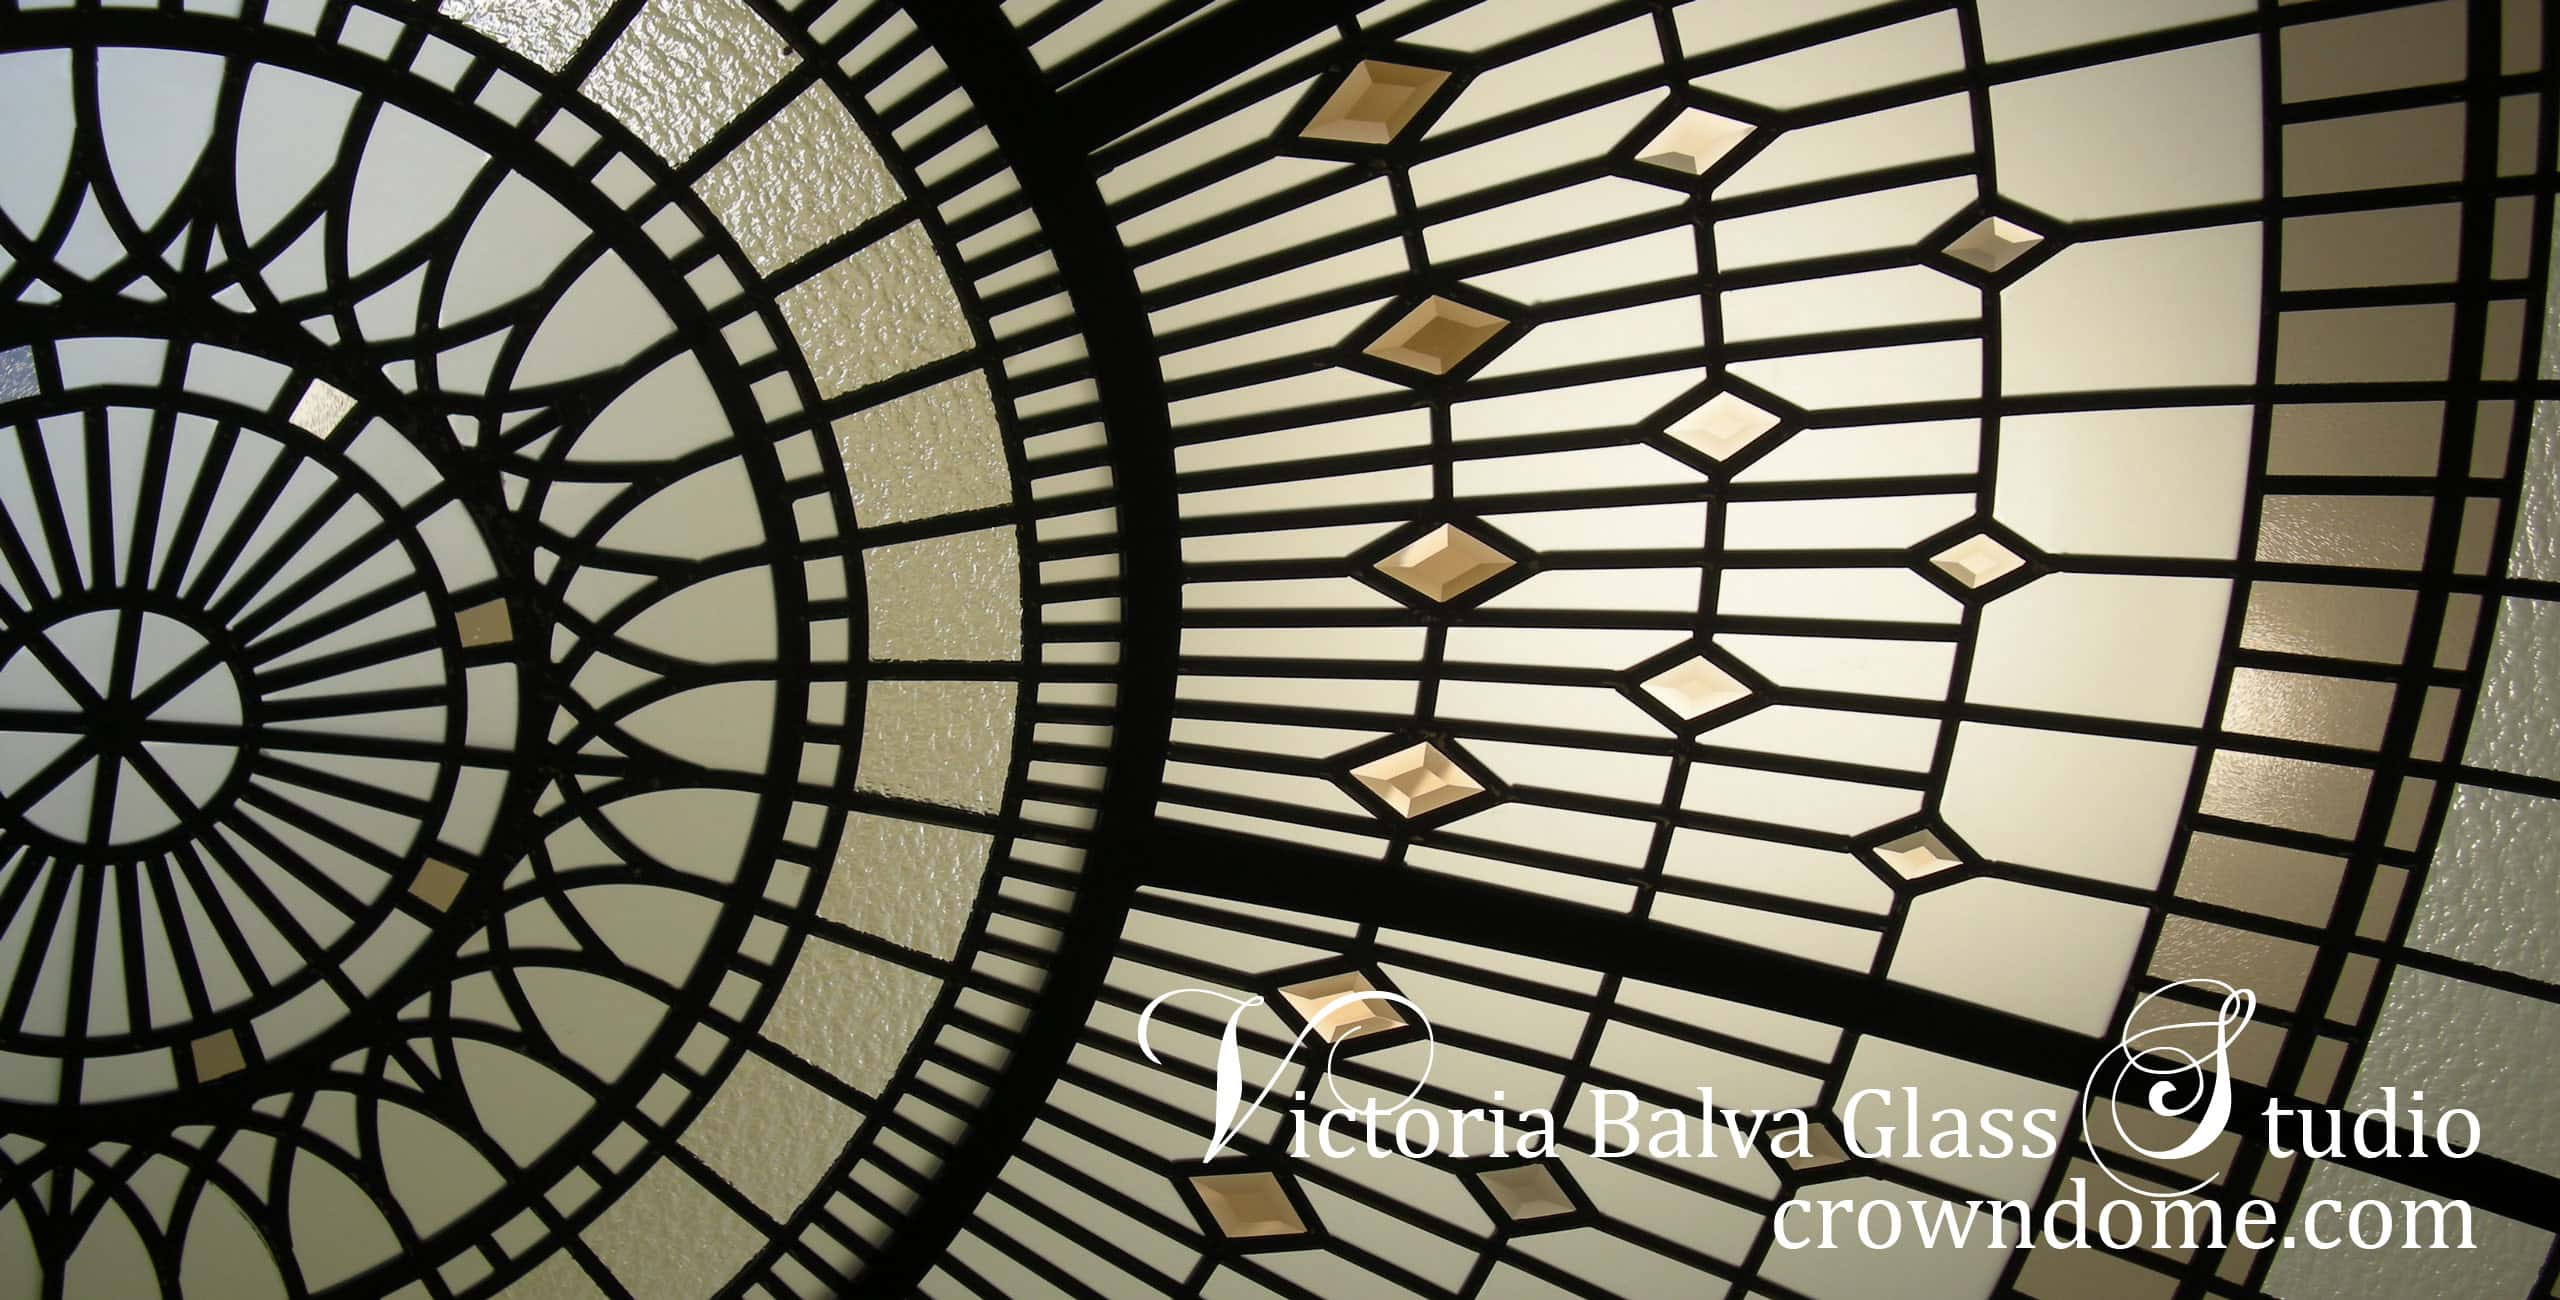 Close up leaded glass dome detail in sunshine. Stained beveled leaded glass dome detail with colored beveled glass and bronze textured glass for a foyer of a custom built residence. Warm colors of leaded glass dome in combination with blue sky color create dramatic colors combinations. Original leaded glass dome design by glass artist Victoria Balva